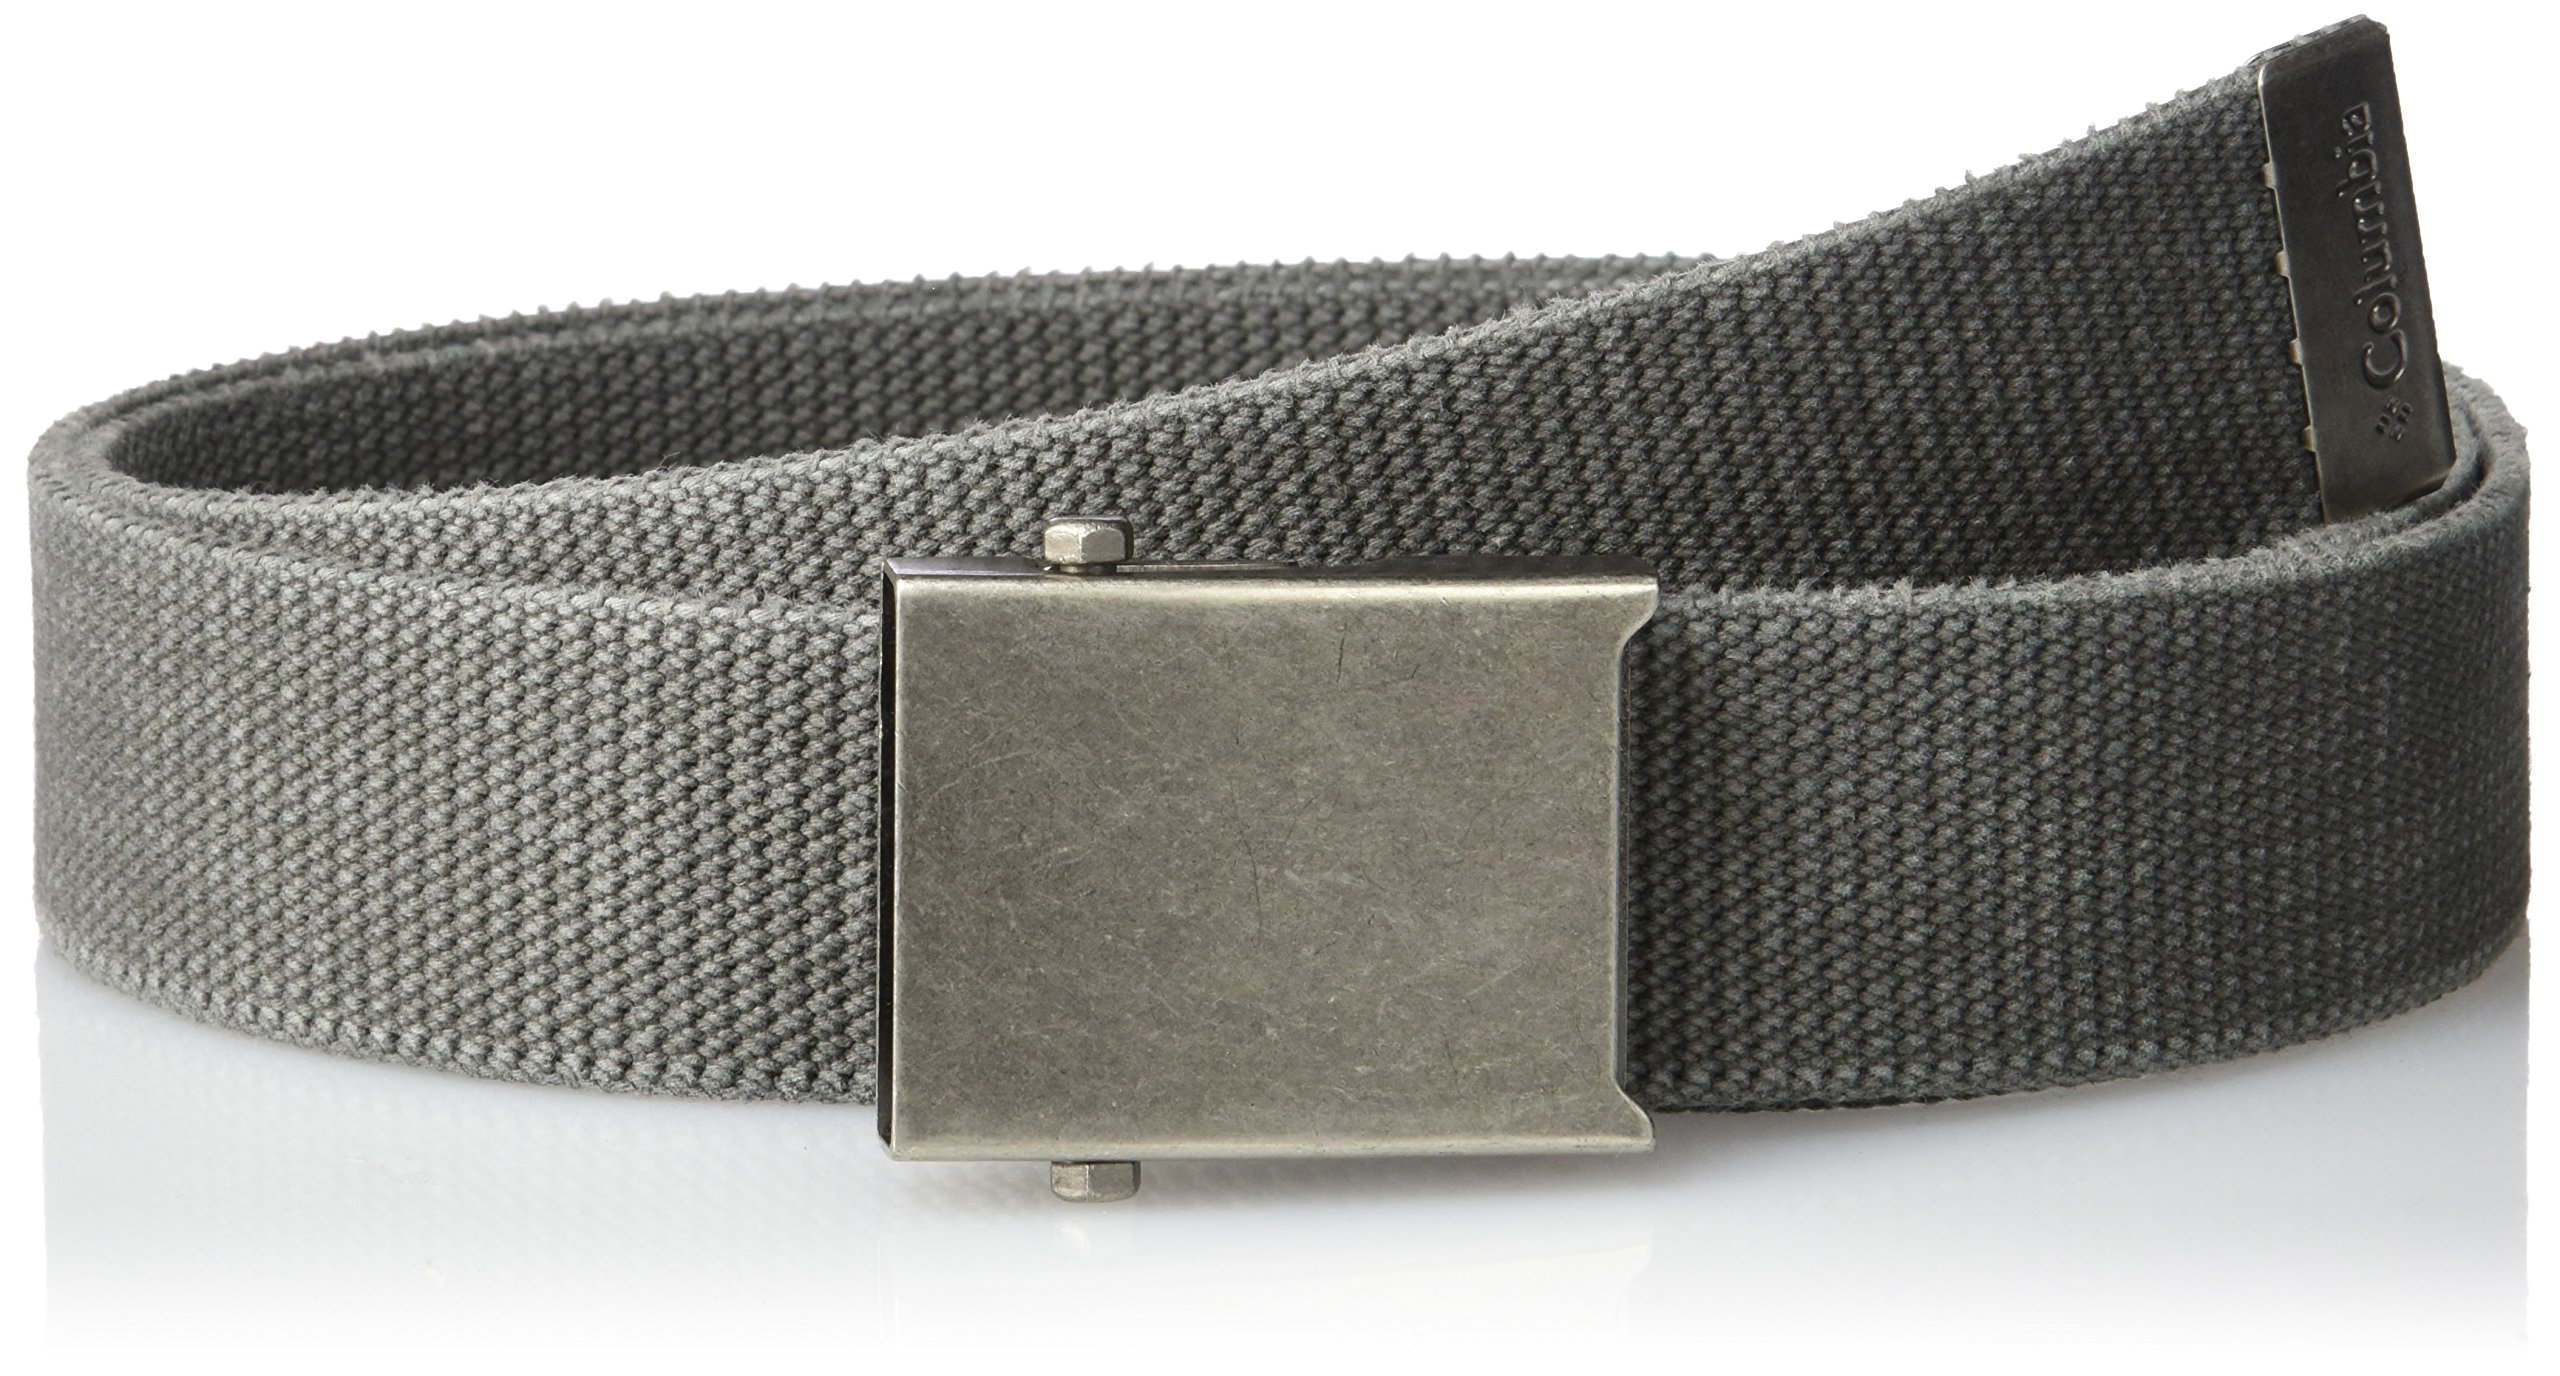 Columbia Men's Military-style Web Belt,Charcoal,42